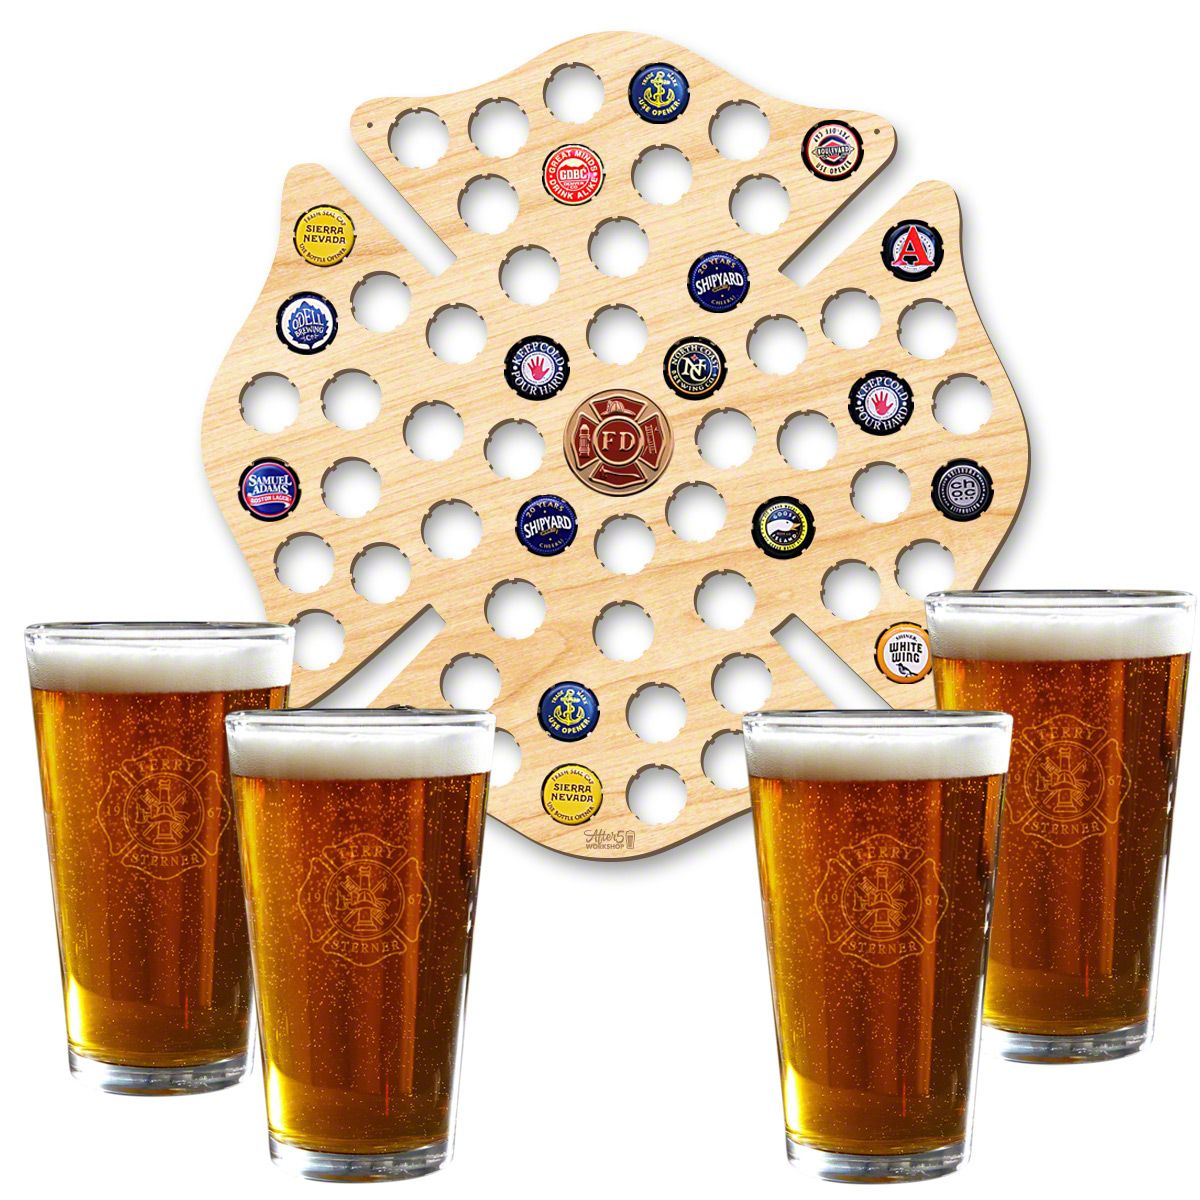 Custom Maltese Cross Beer Cap Map and Beer Glasses